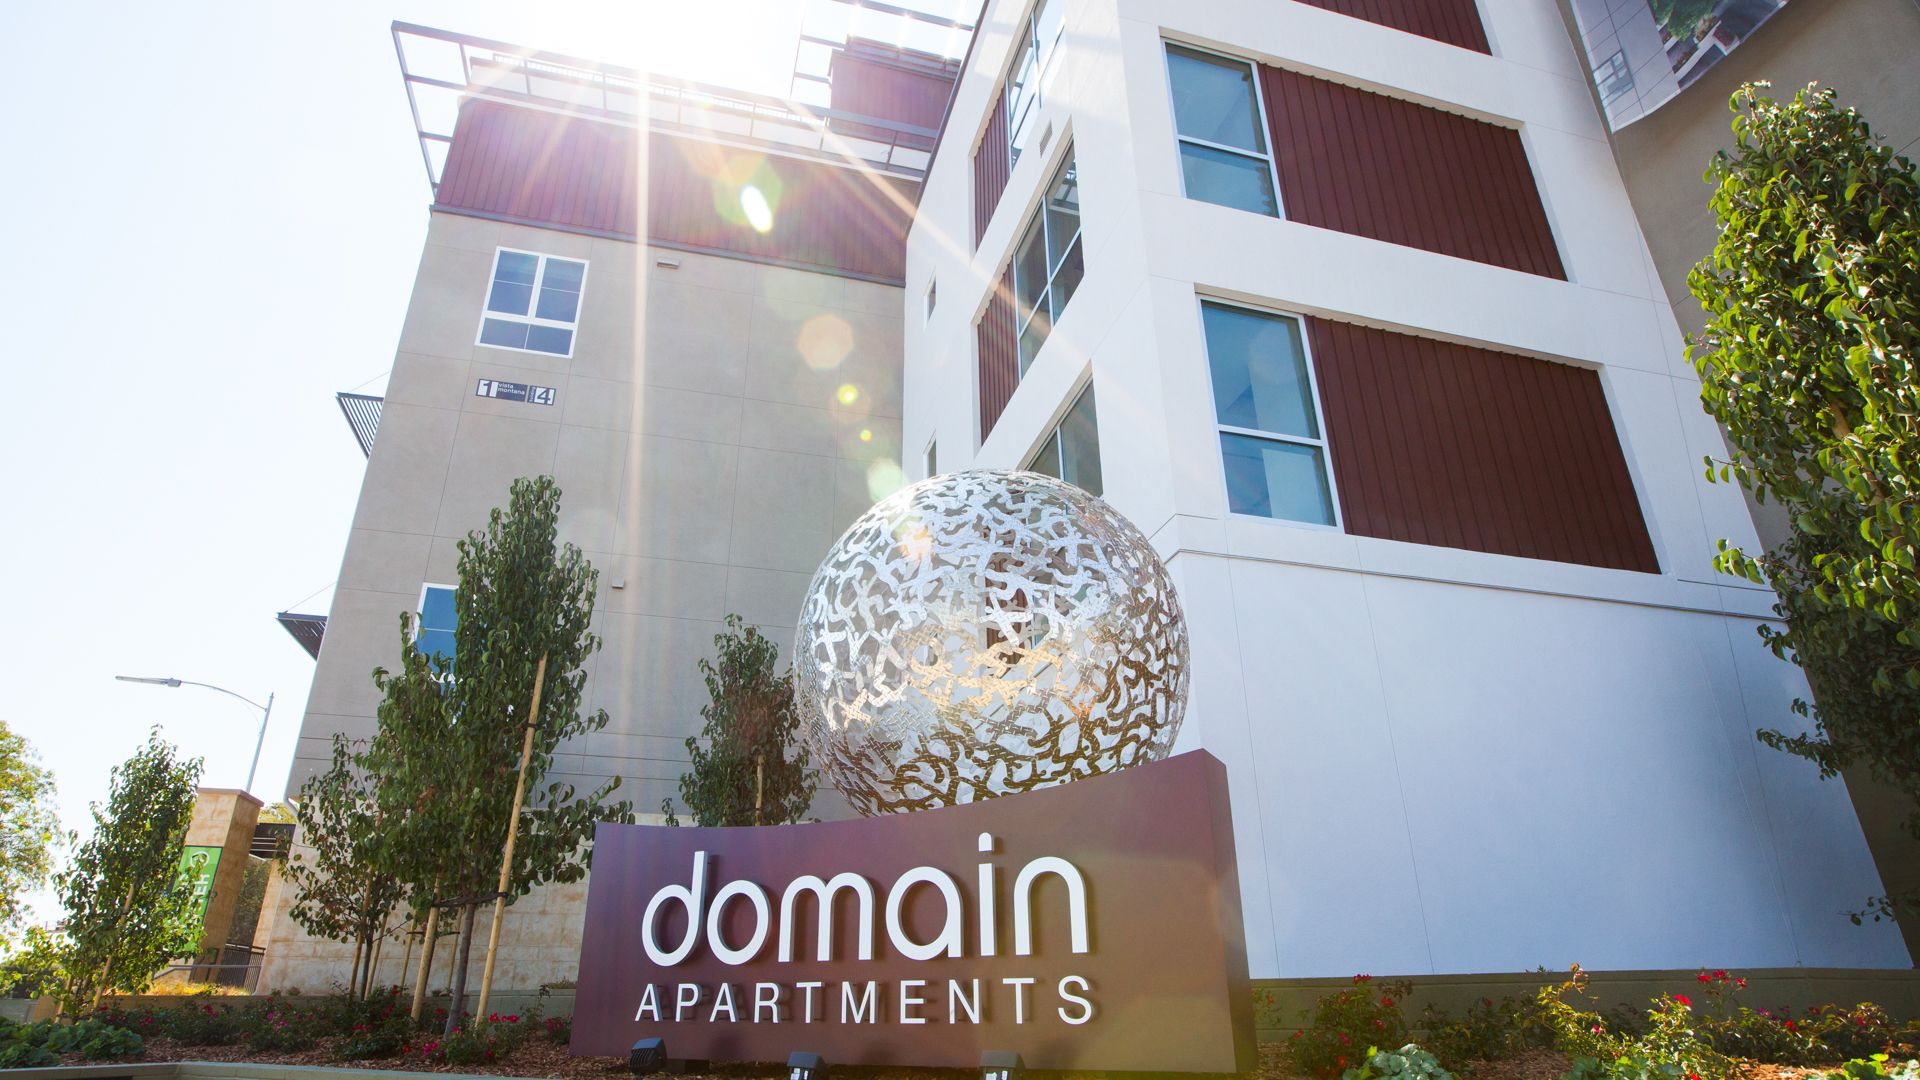 Domain Apartments - Building and Sign